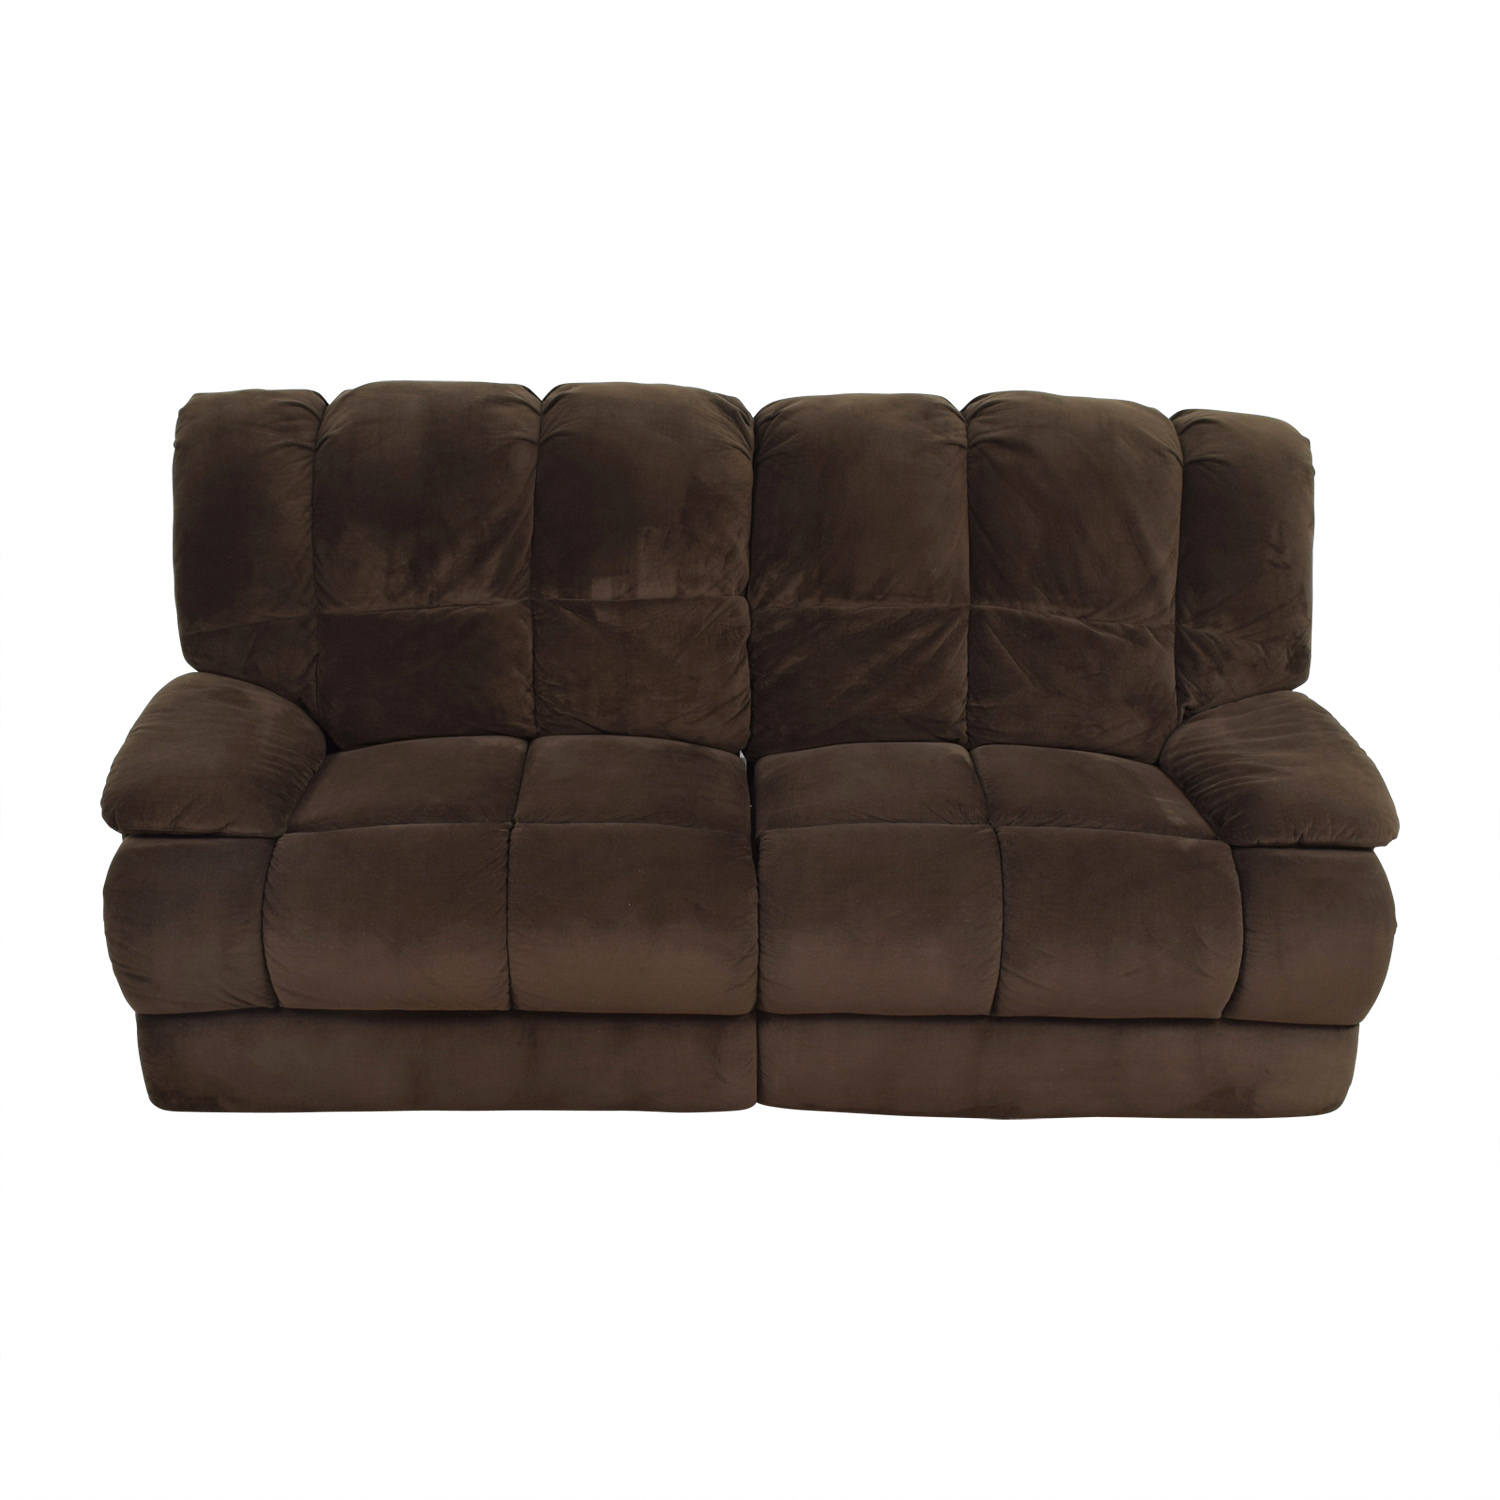 American Signature Furniture Brown Recliner Sofa / Chairs